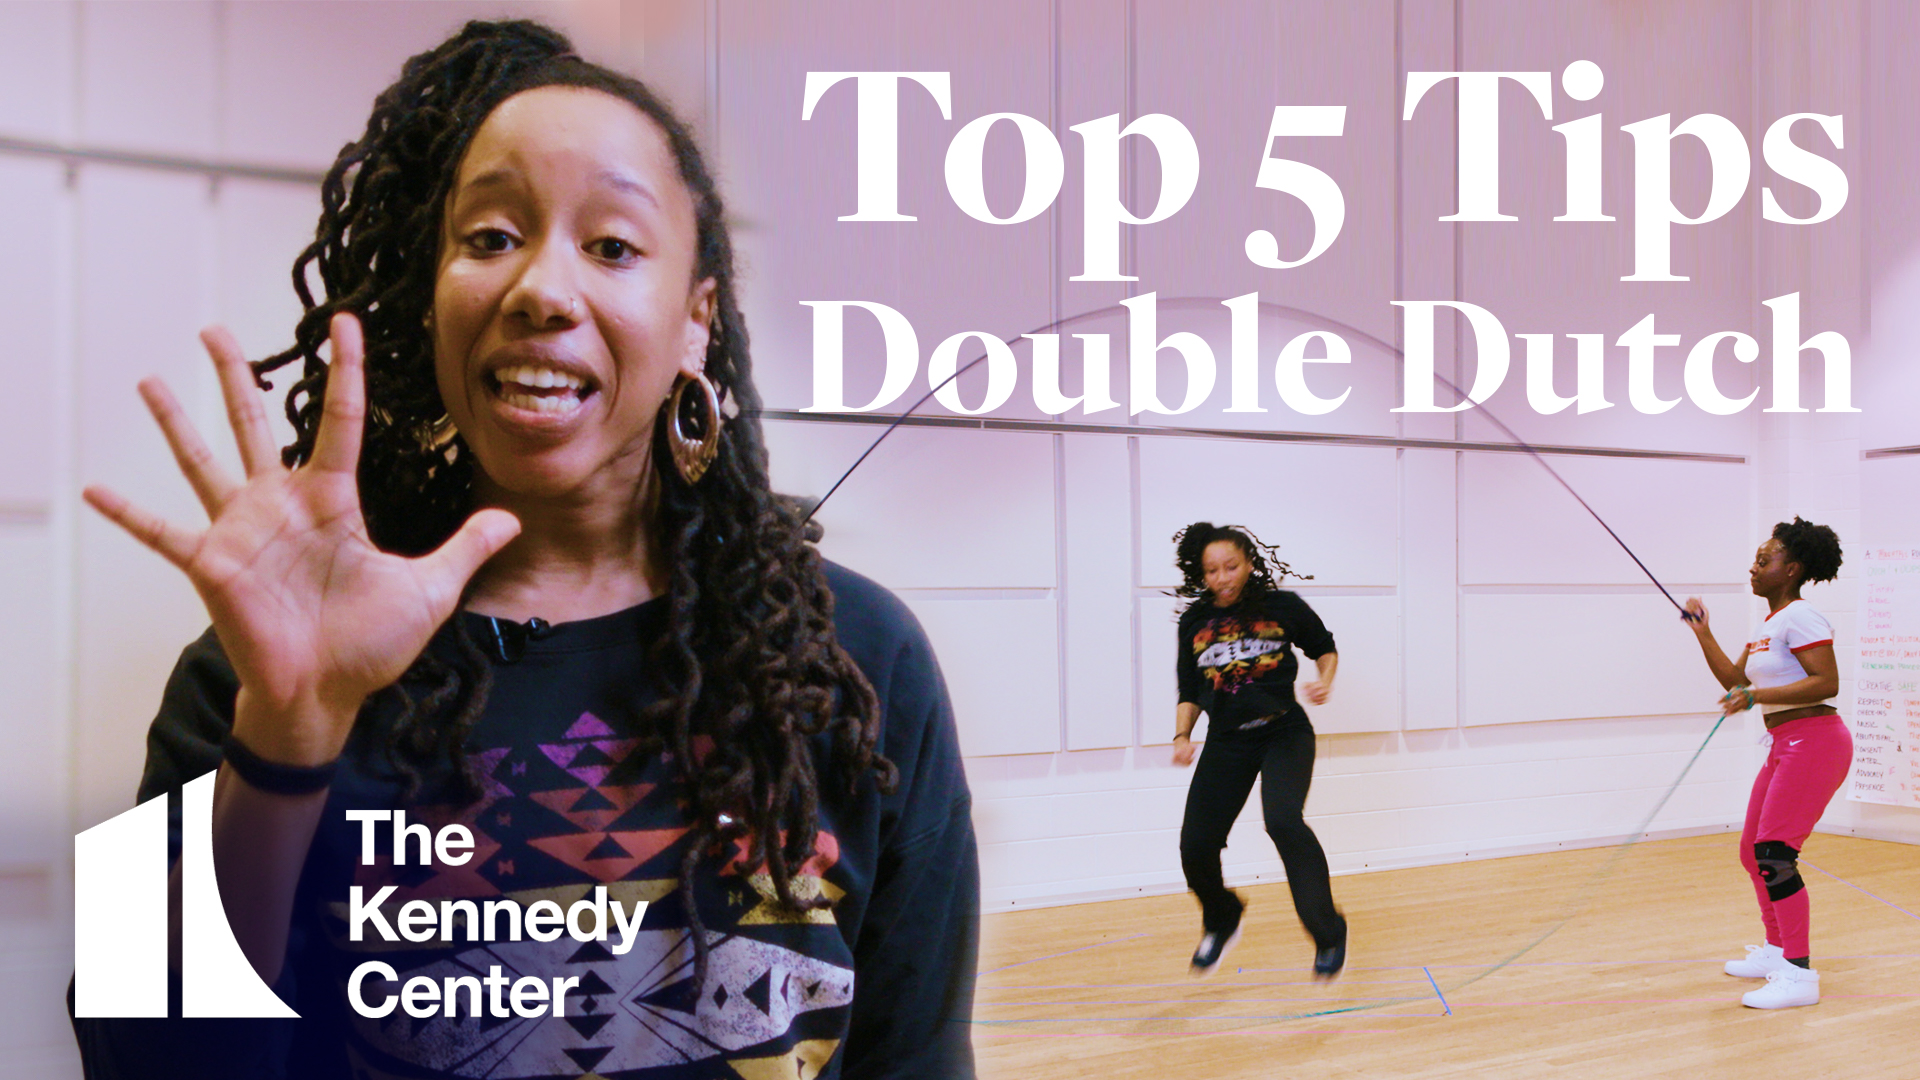 Top 5 Tips: Double Dutch with Ebony Ingram and the Cast of